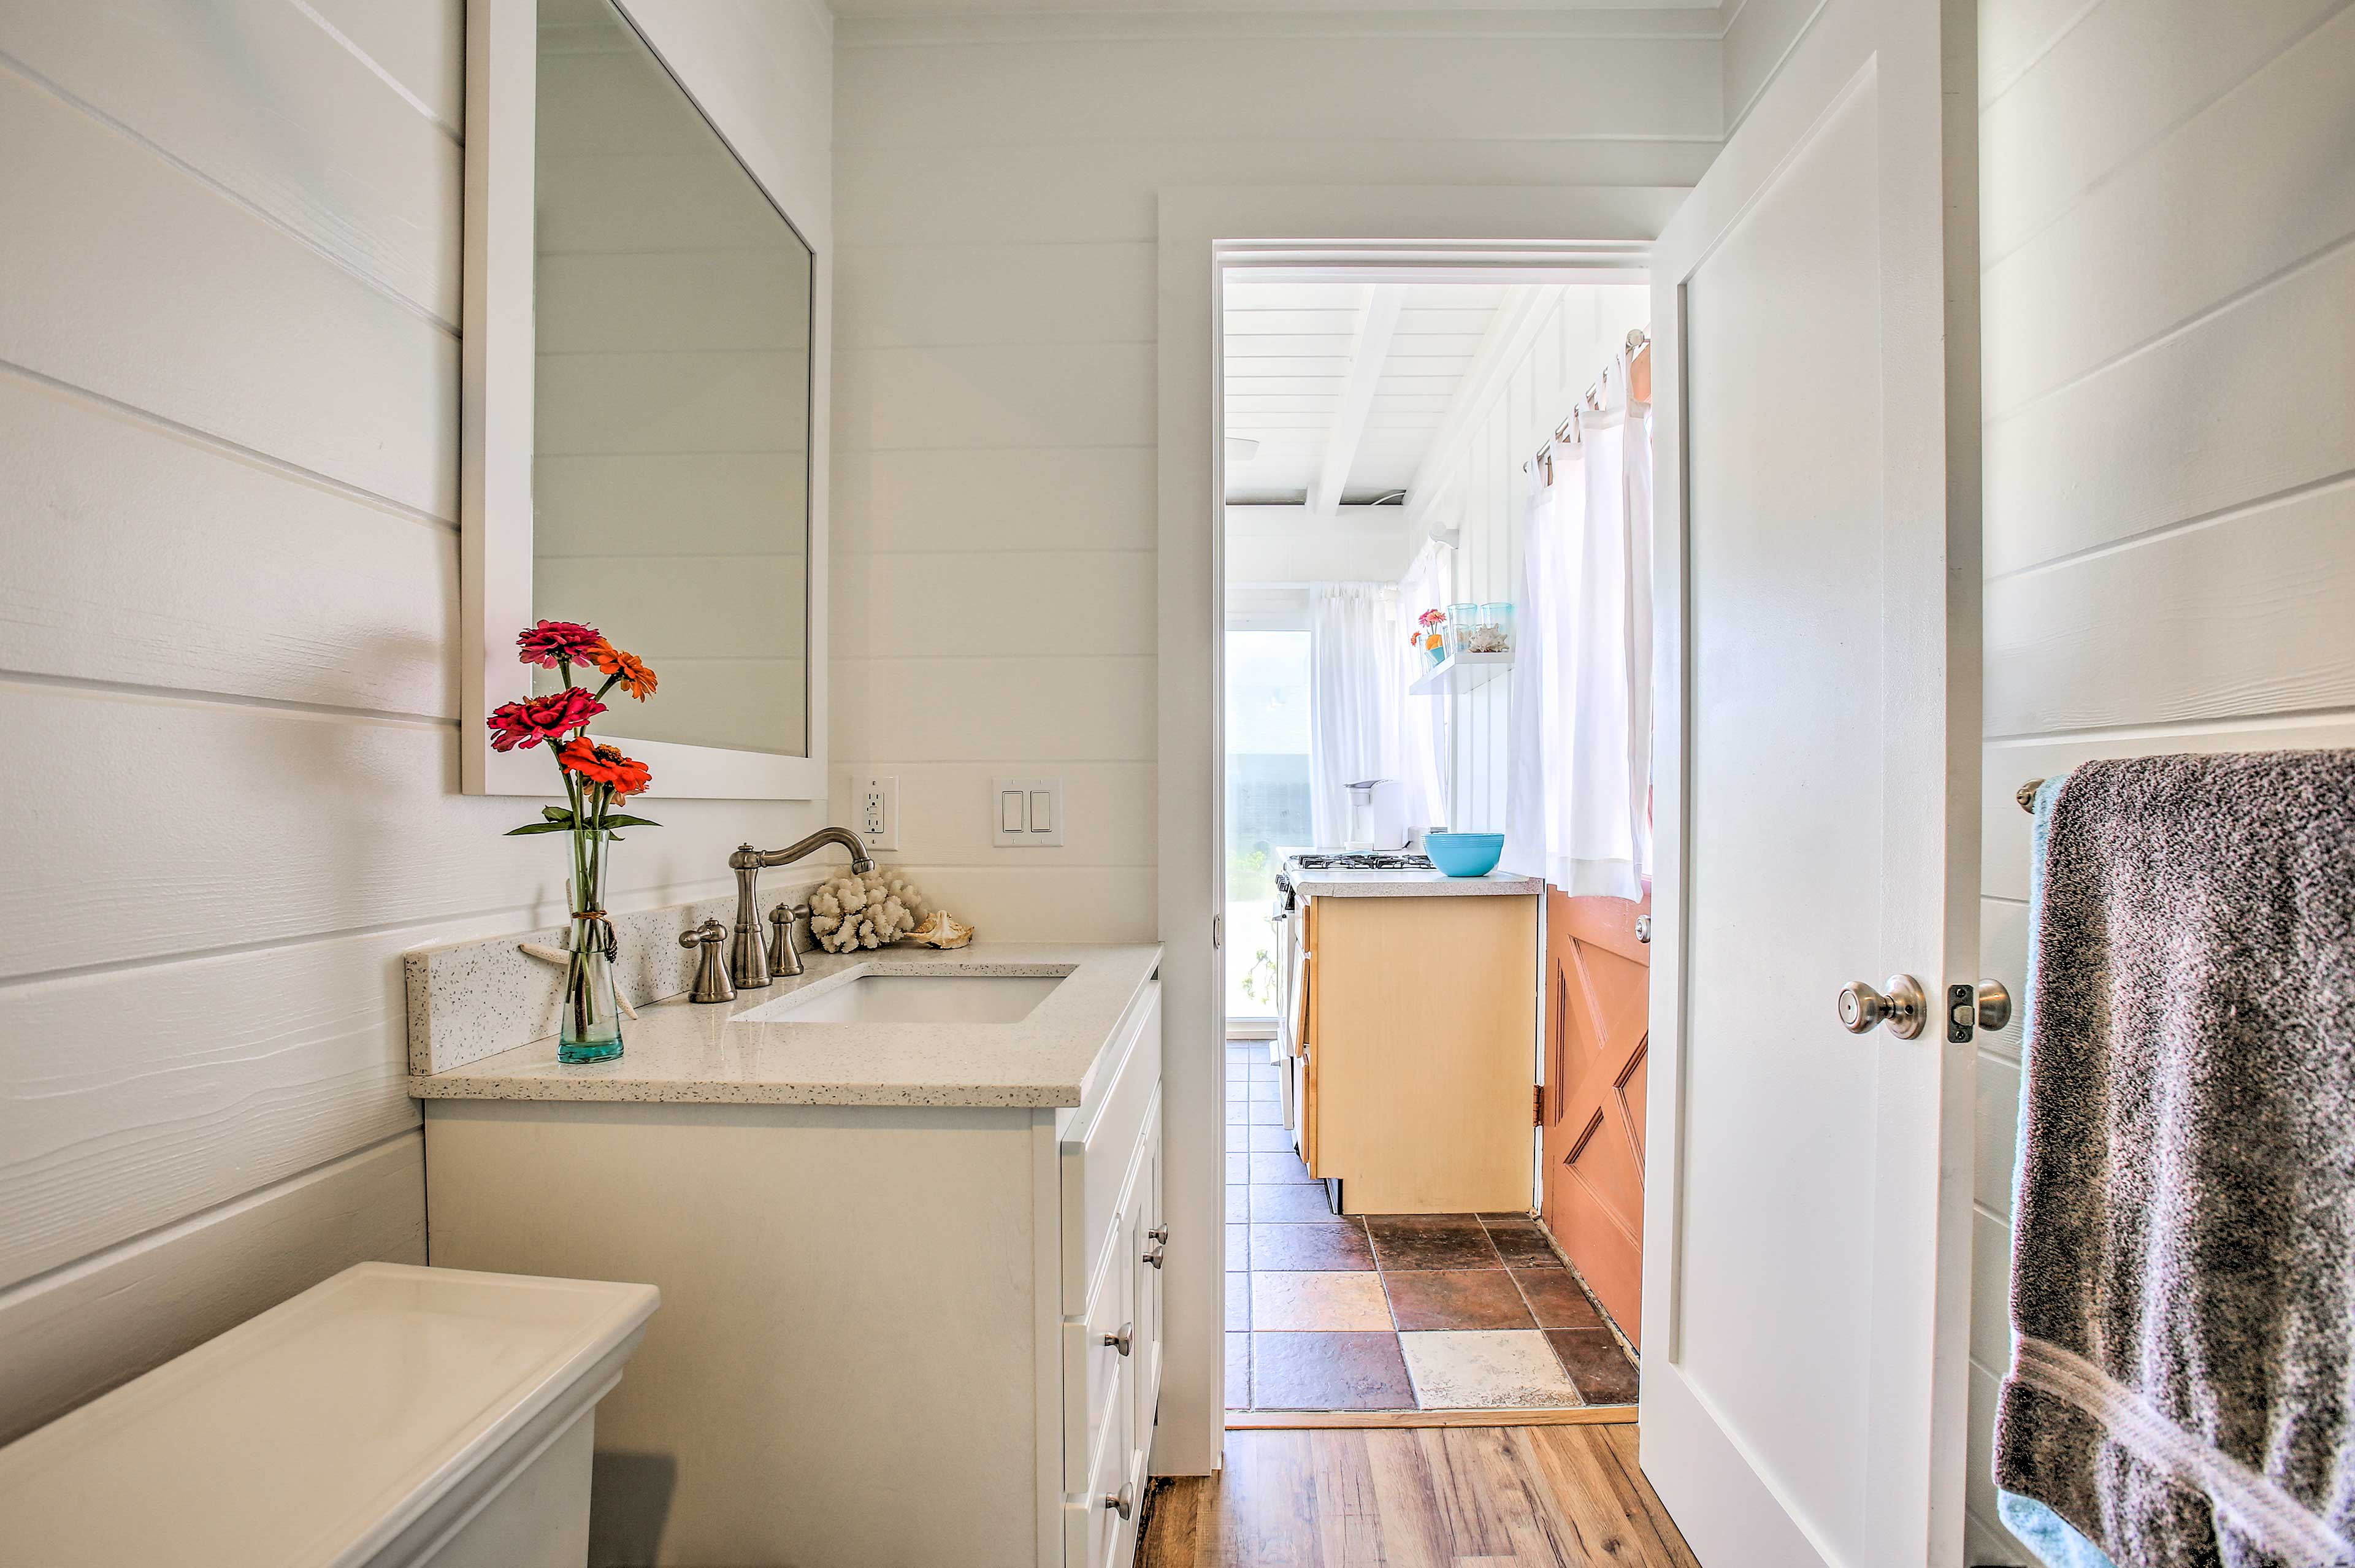 The coastal decor and white walls continue in this space.